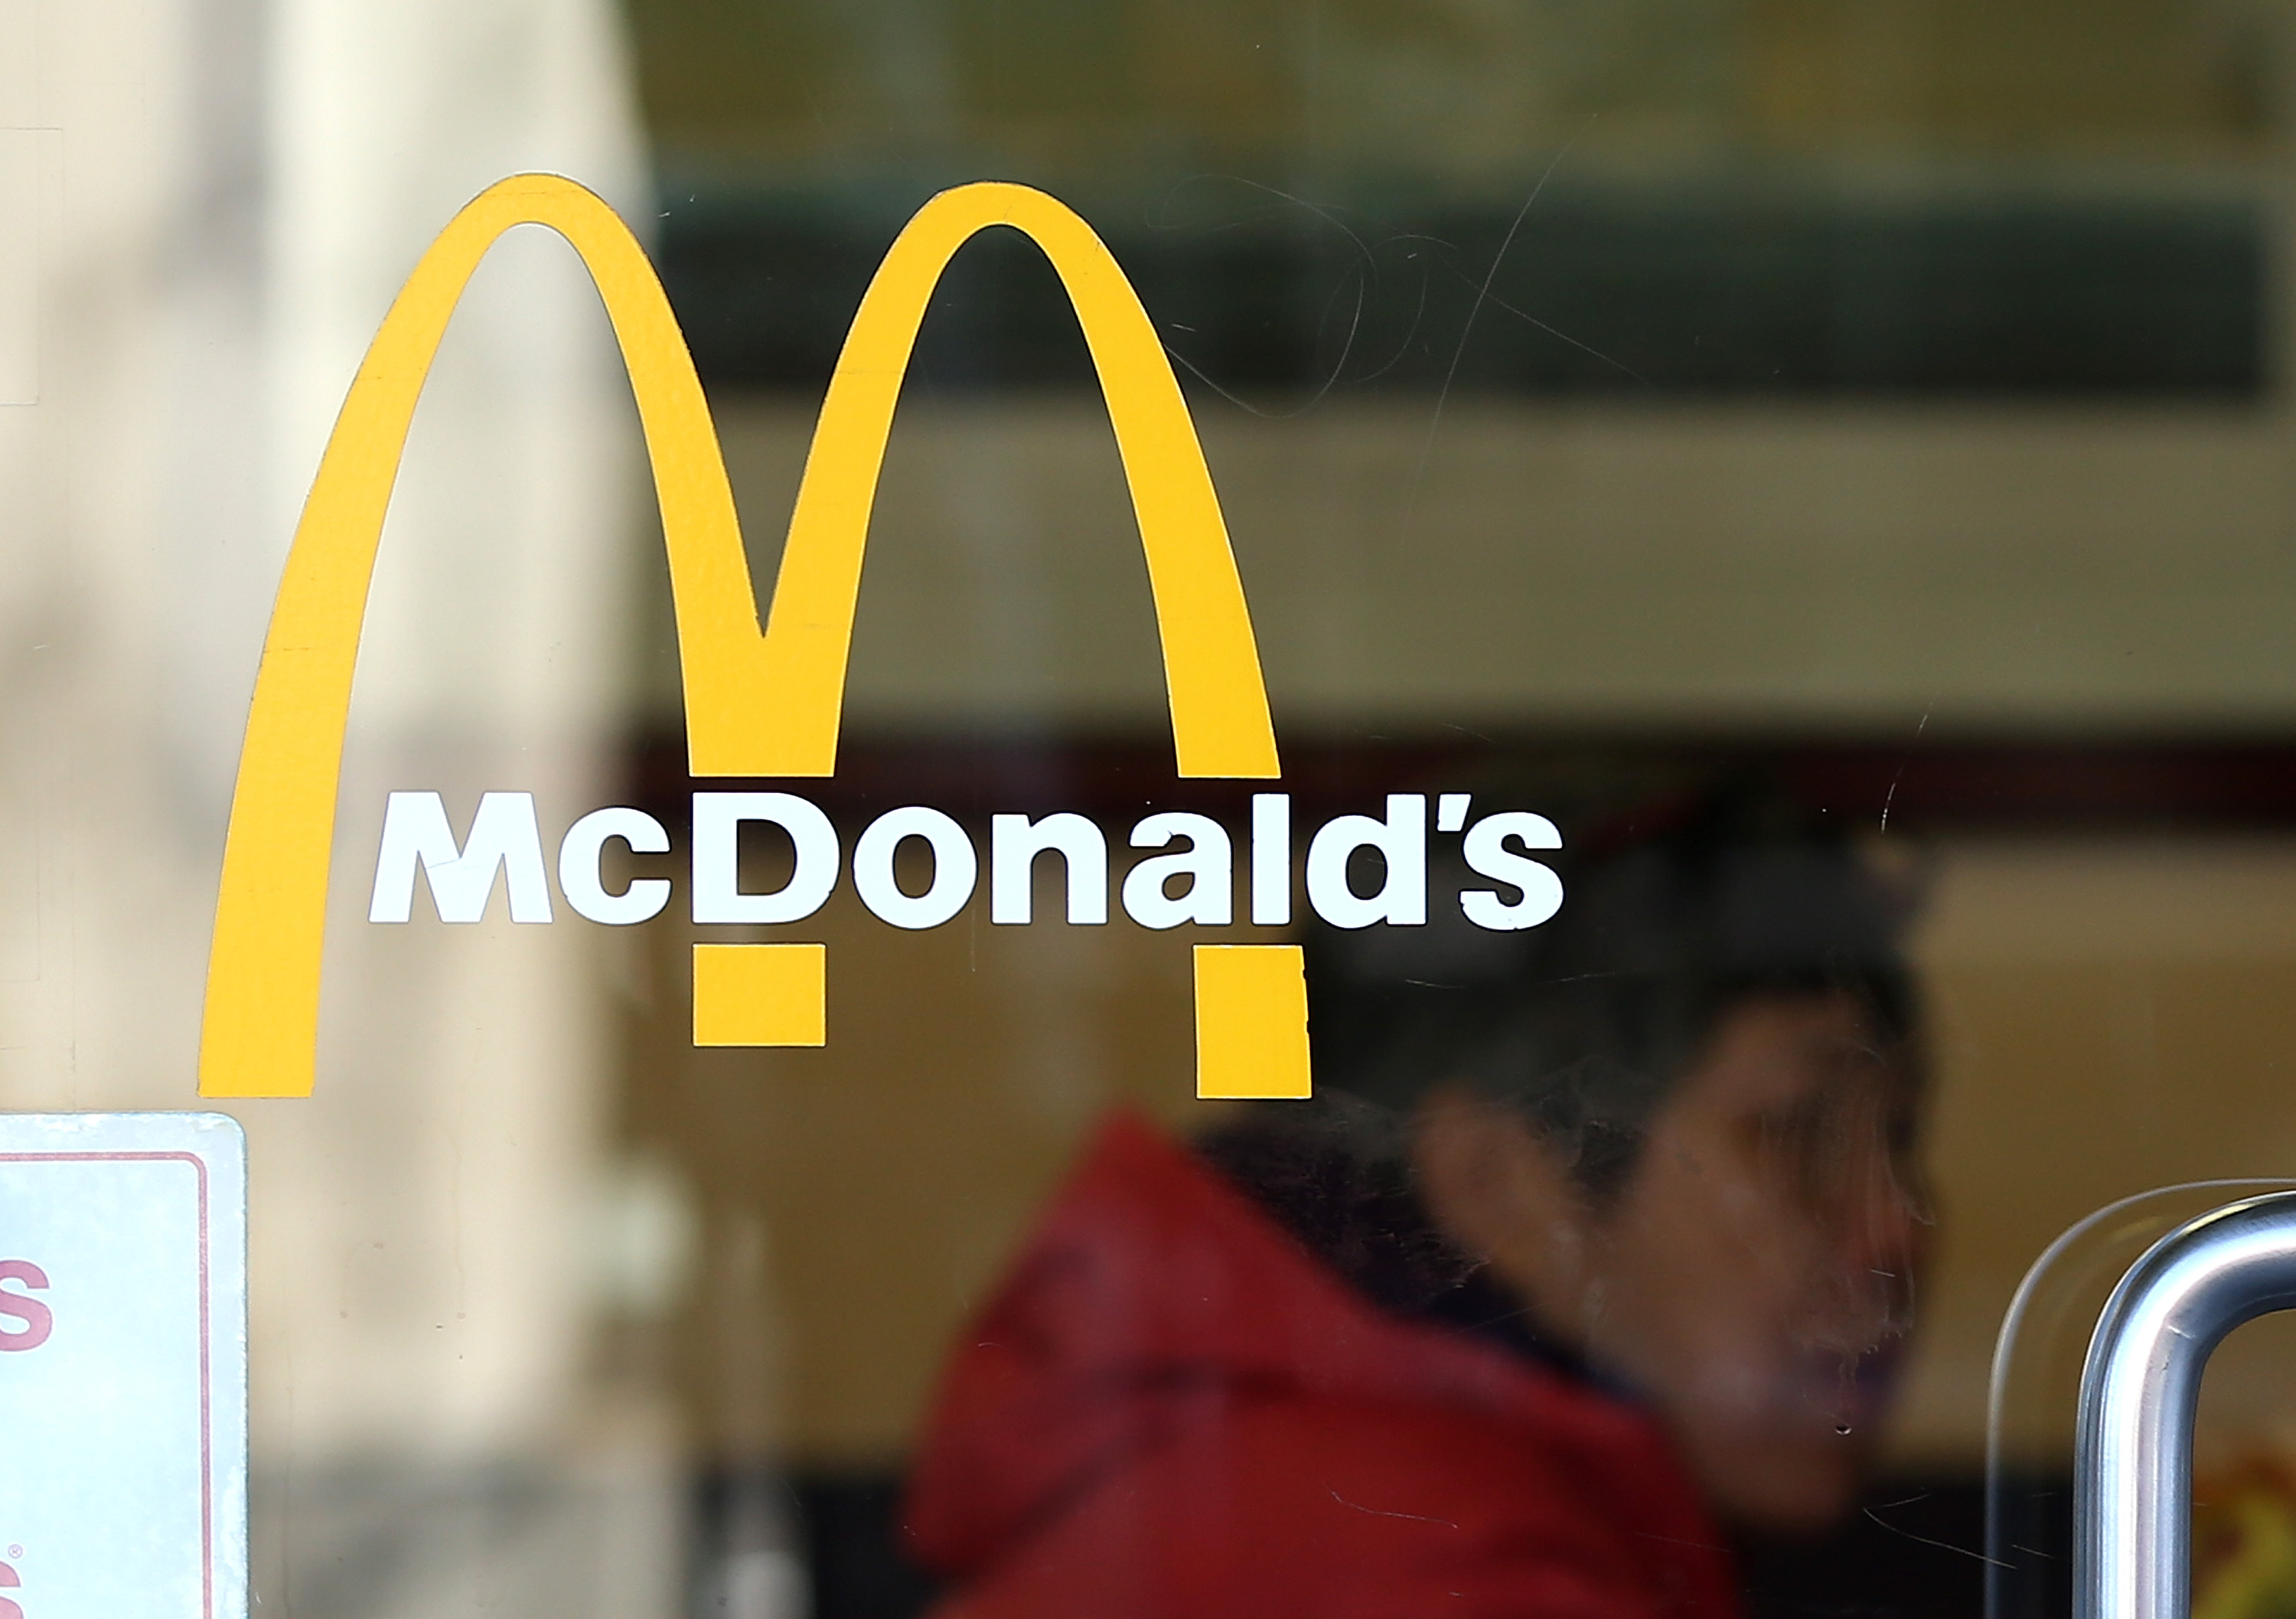 mcdonald s a good image with bad Mcdonald's is the leading global foodservice retailer with over 36,000 restaurants in more than 100 countries around the world.